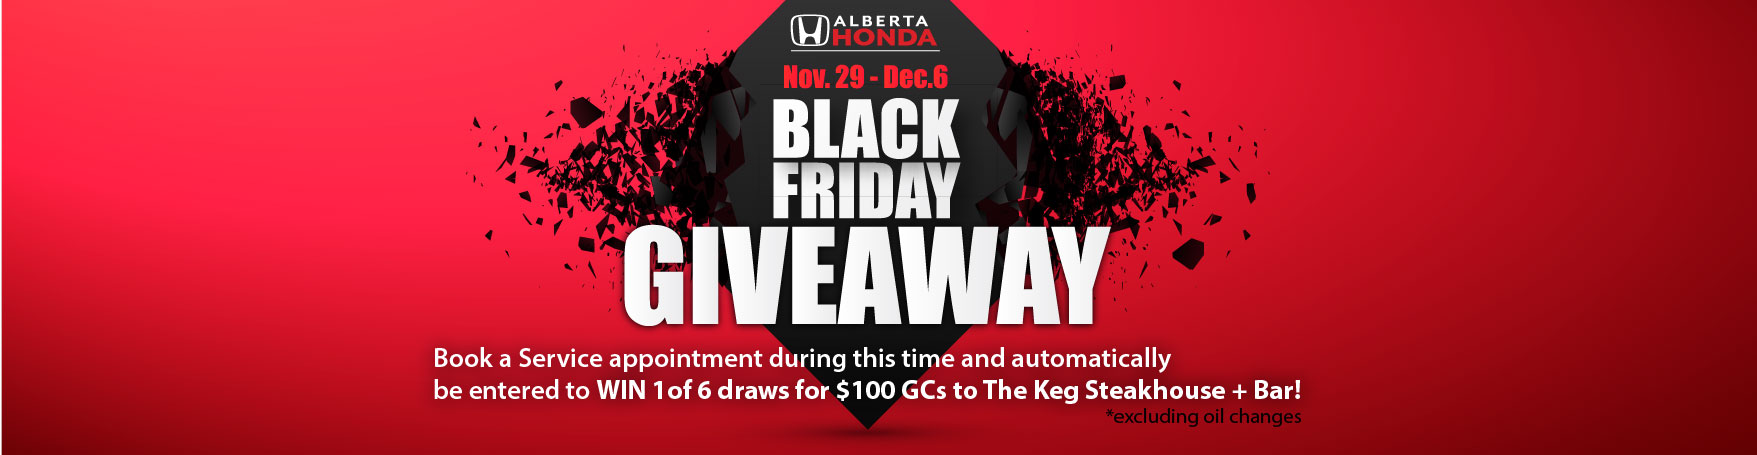 Win $$ with Service in our Black Friday Contest